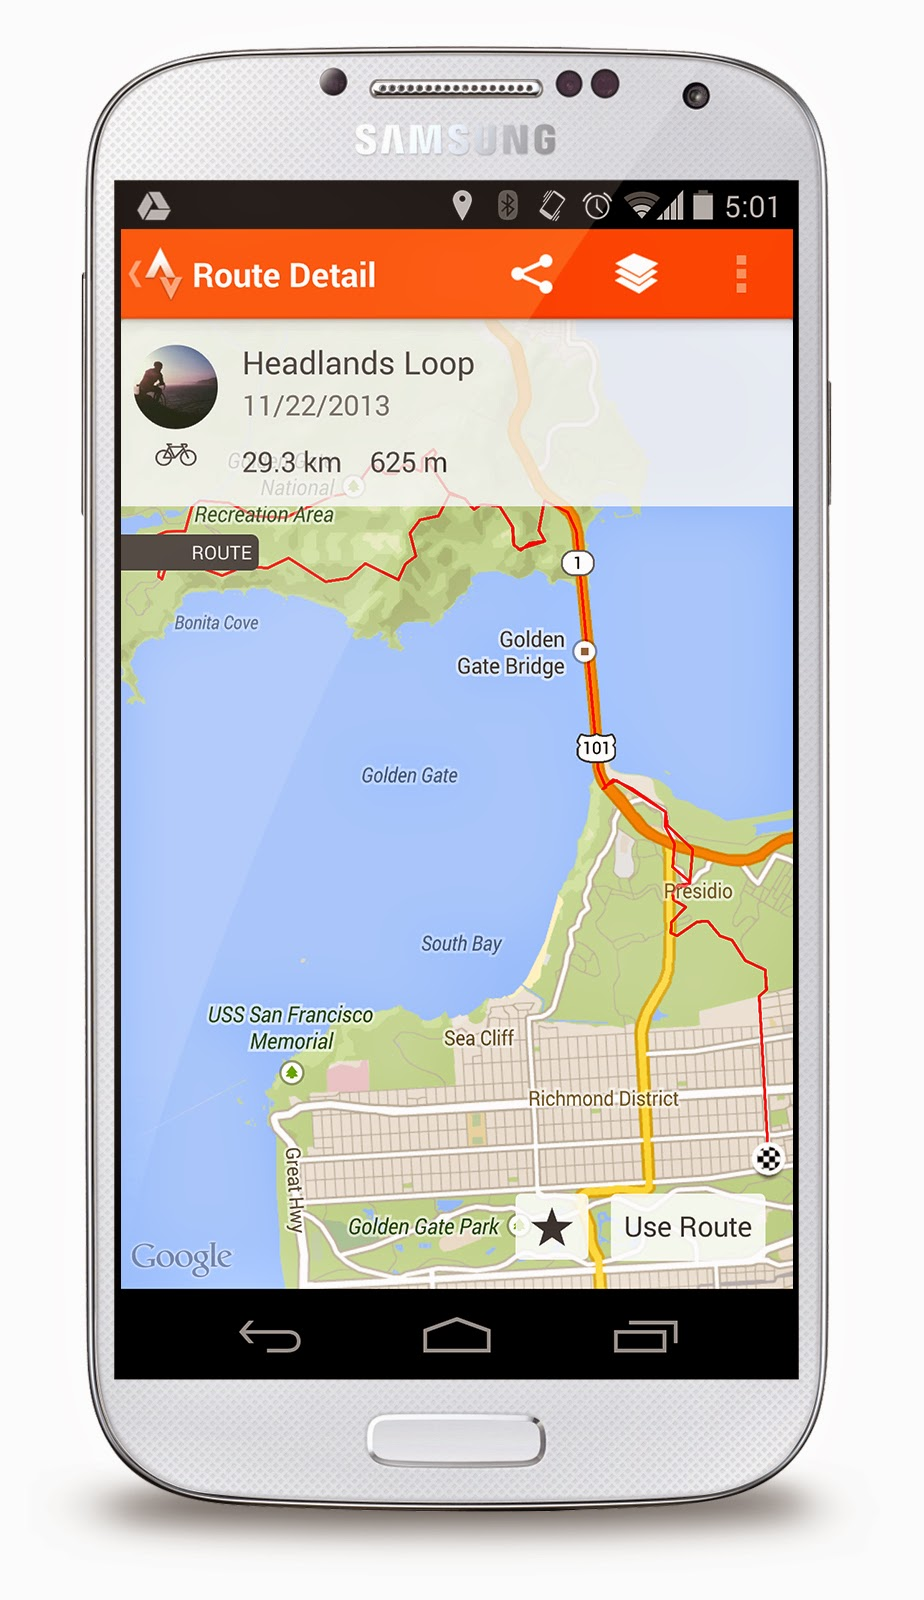 Official Google Cloud Blog: Strava maps runs, rides and fitness data